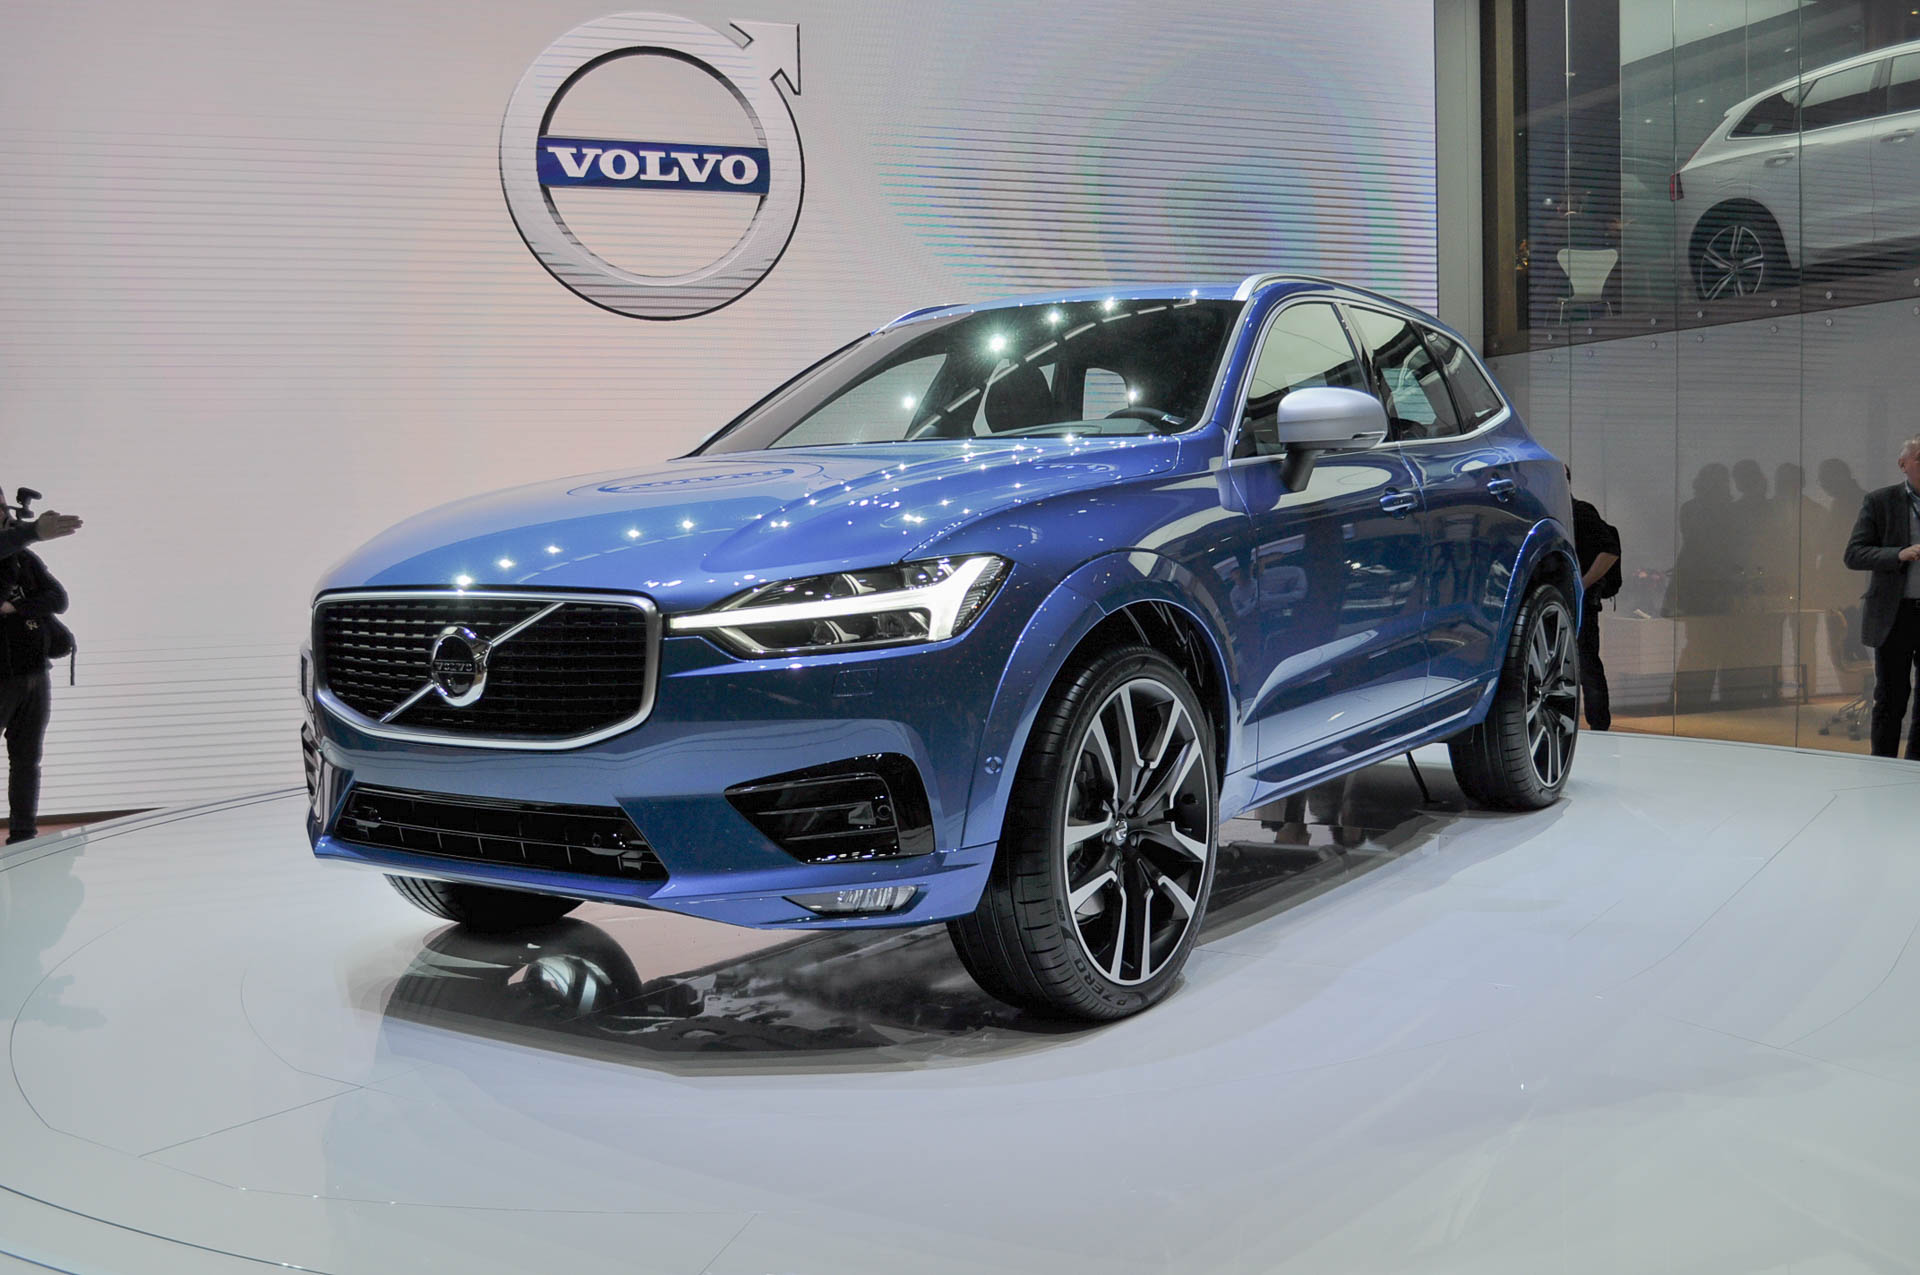 2018 Volvo XC60 ups the style, tech